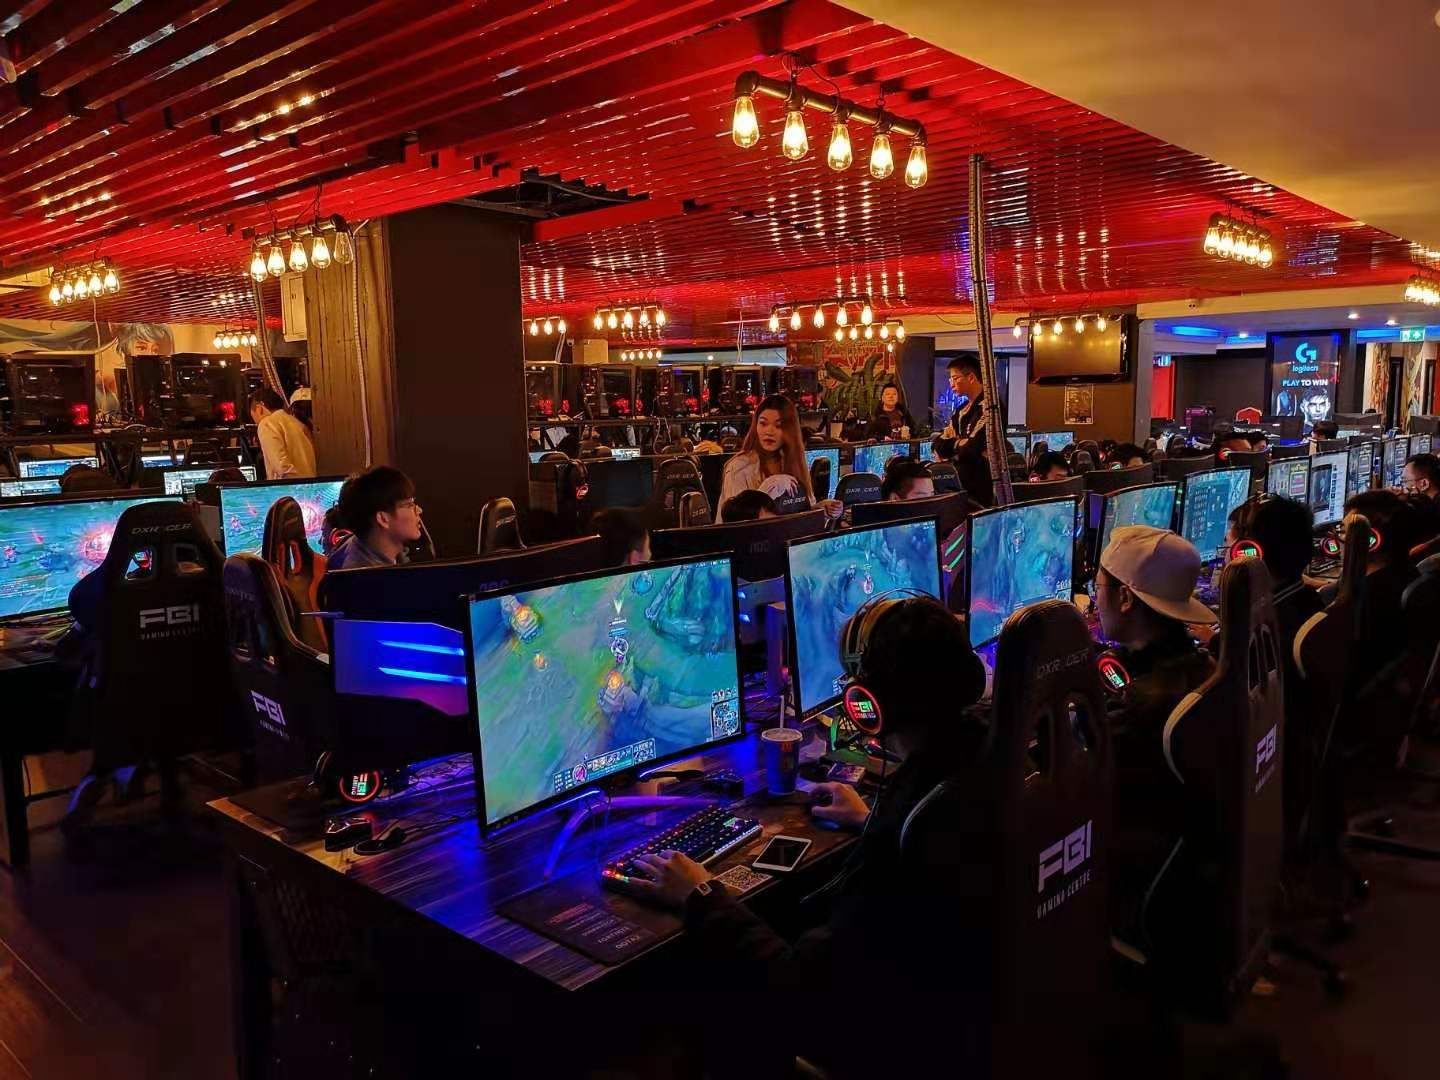 Internet Gaming Cafe Sydney